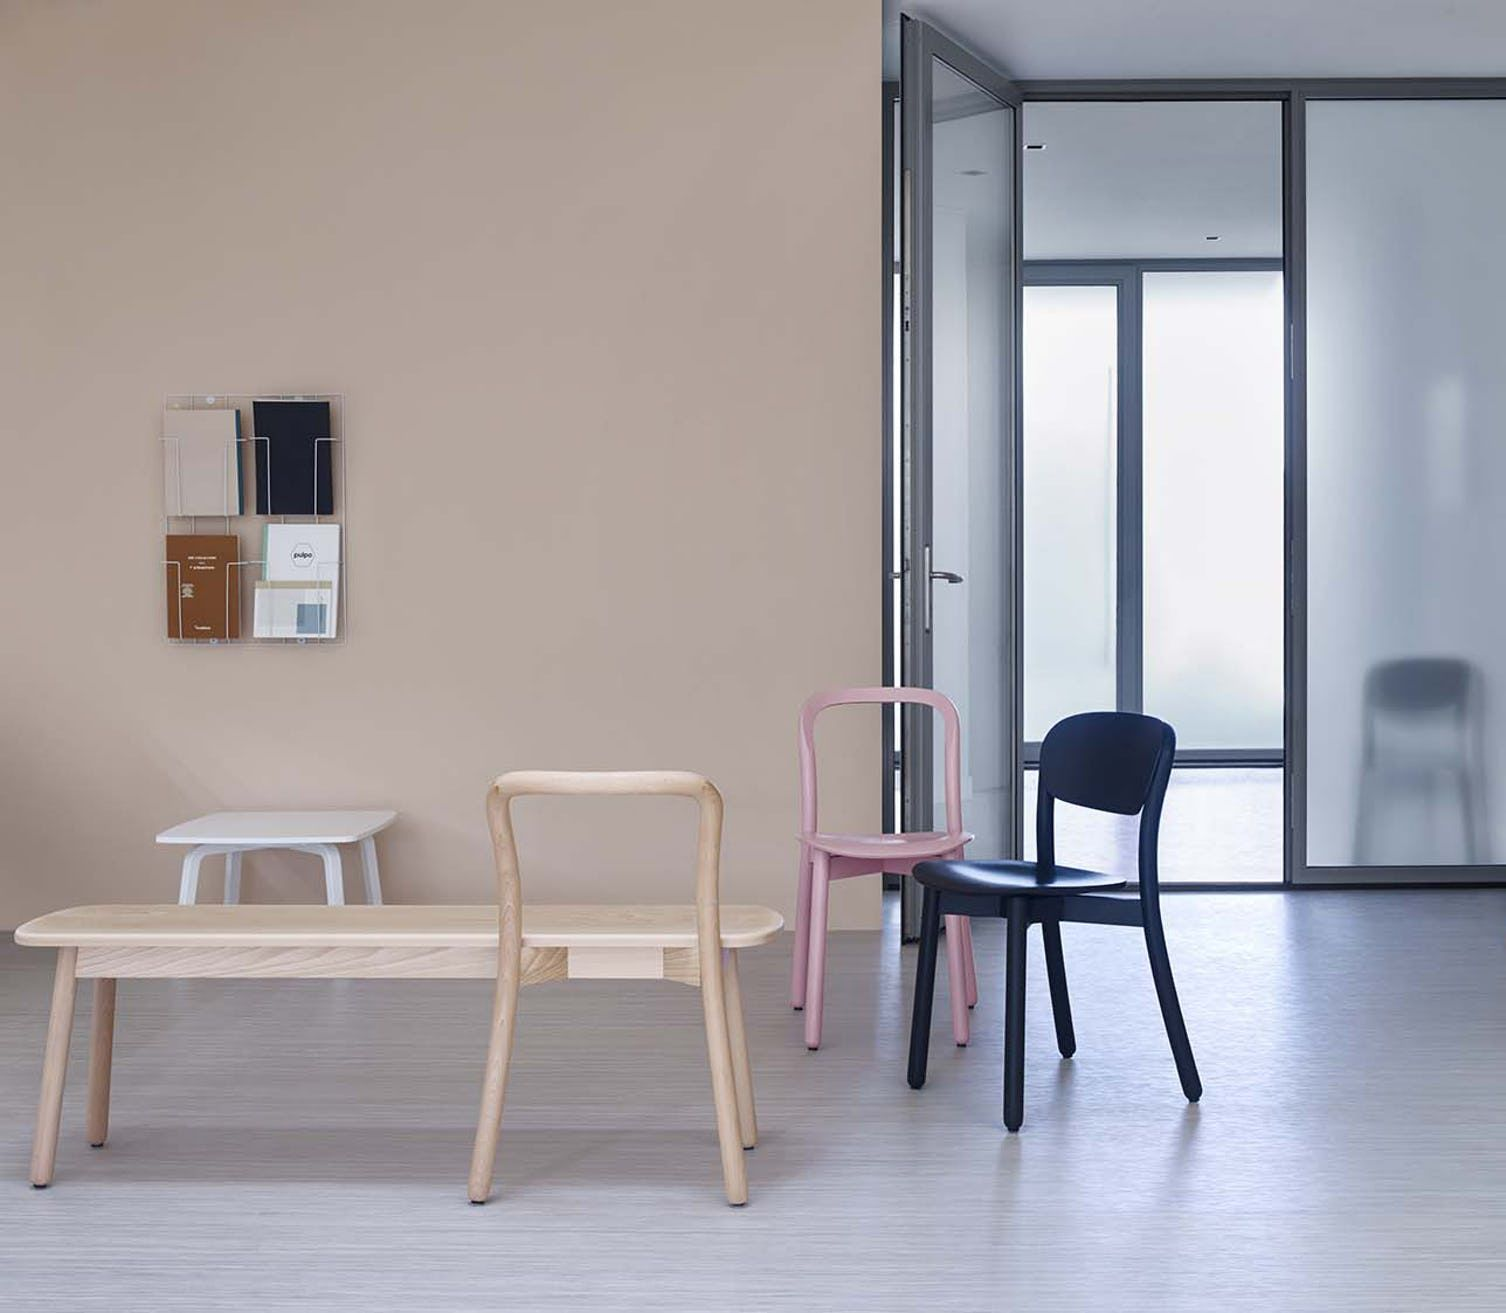 Beech Bench by DUM, now available at Haute Living